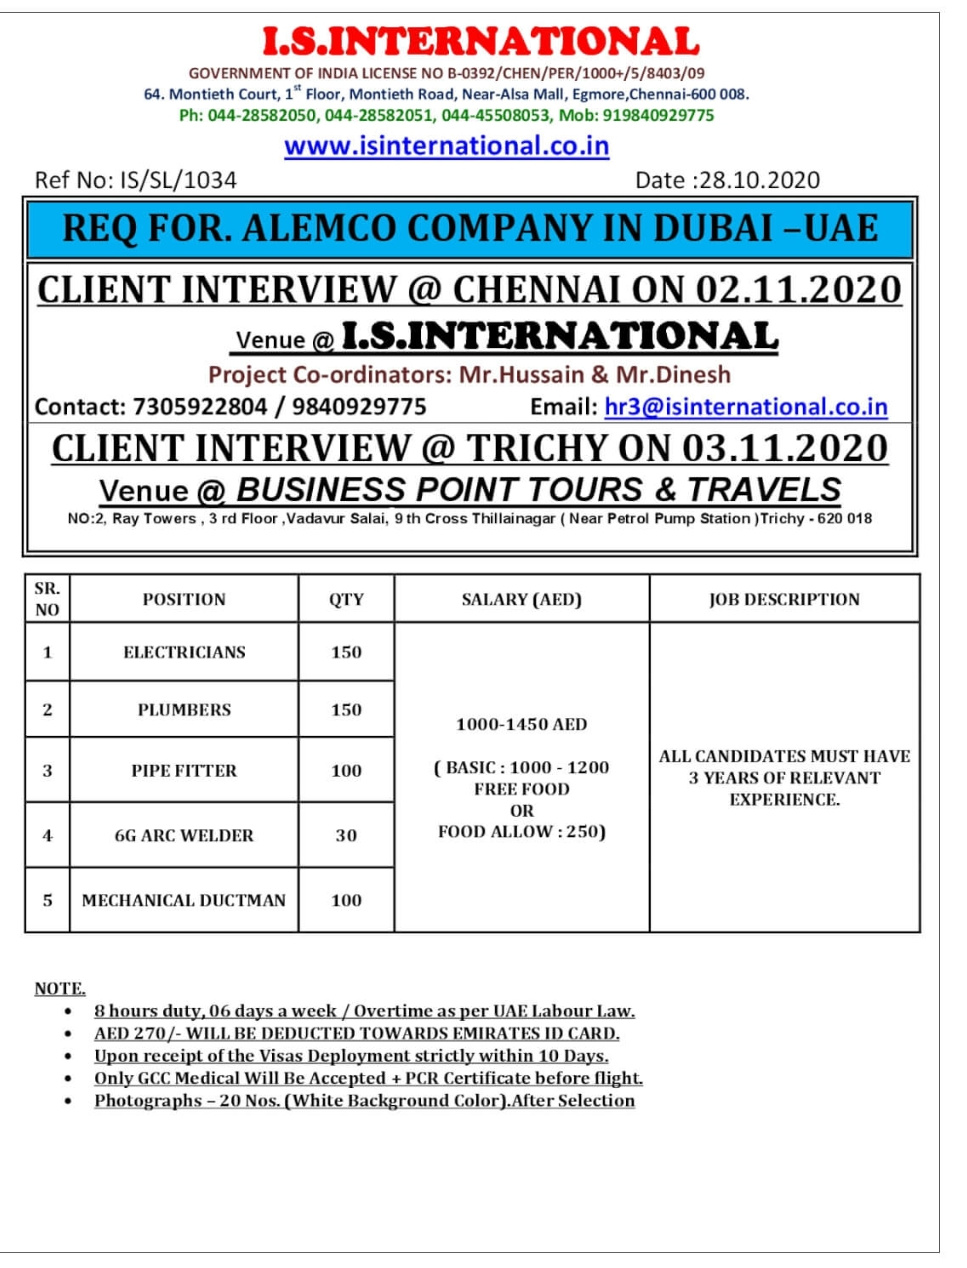 WALK-IN INTERVIEW AT CHENNAI, TRICHY FOR DUBAI-UAE